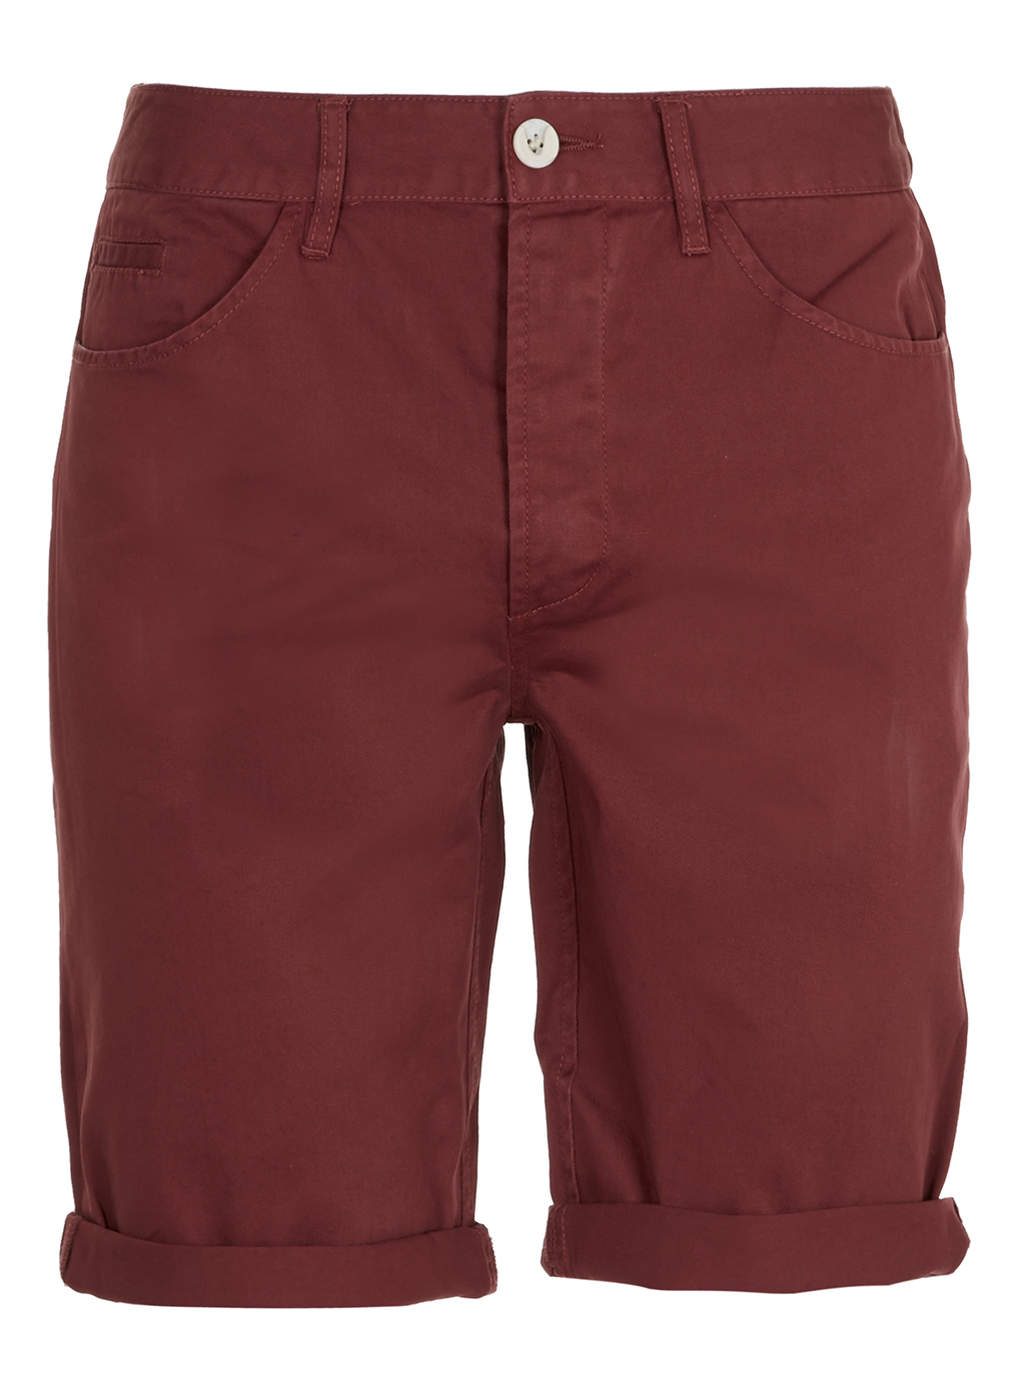 Burgundy Skinny Chinos   Was $45,  now $30